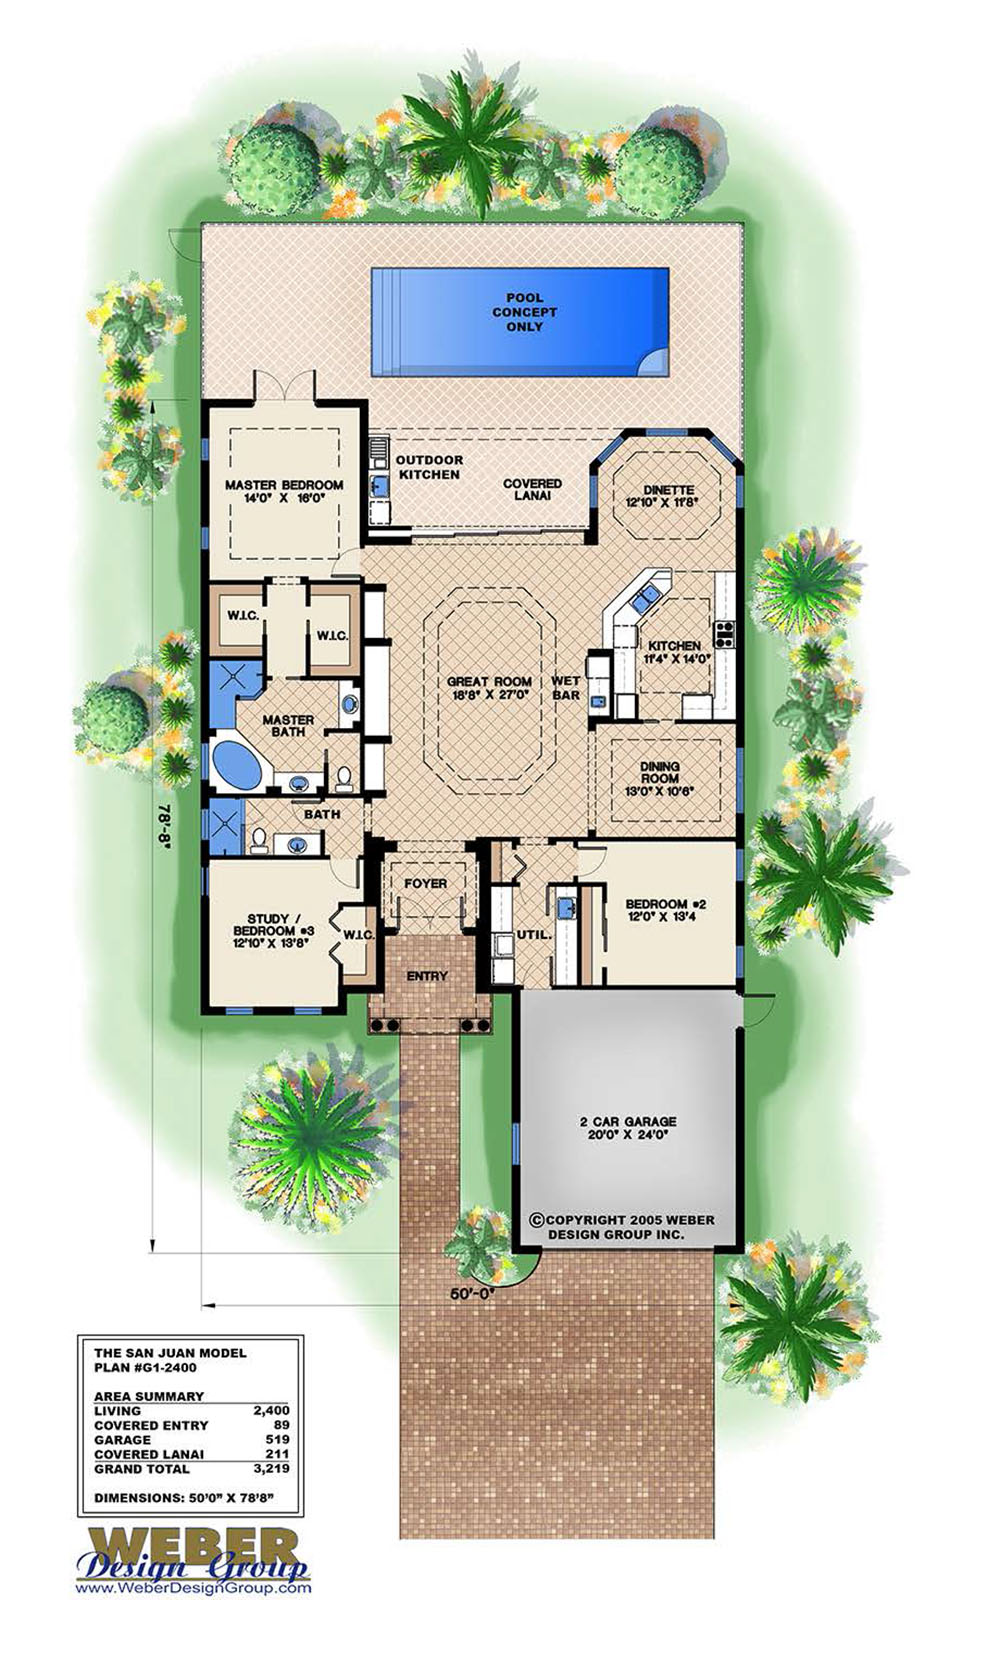 San juan house plan weber design group naples fl for Weber house plans